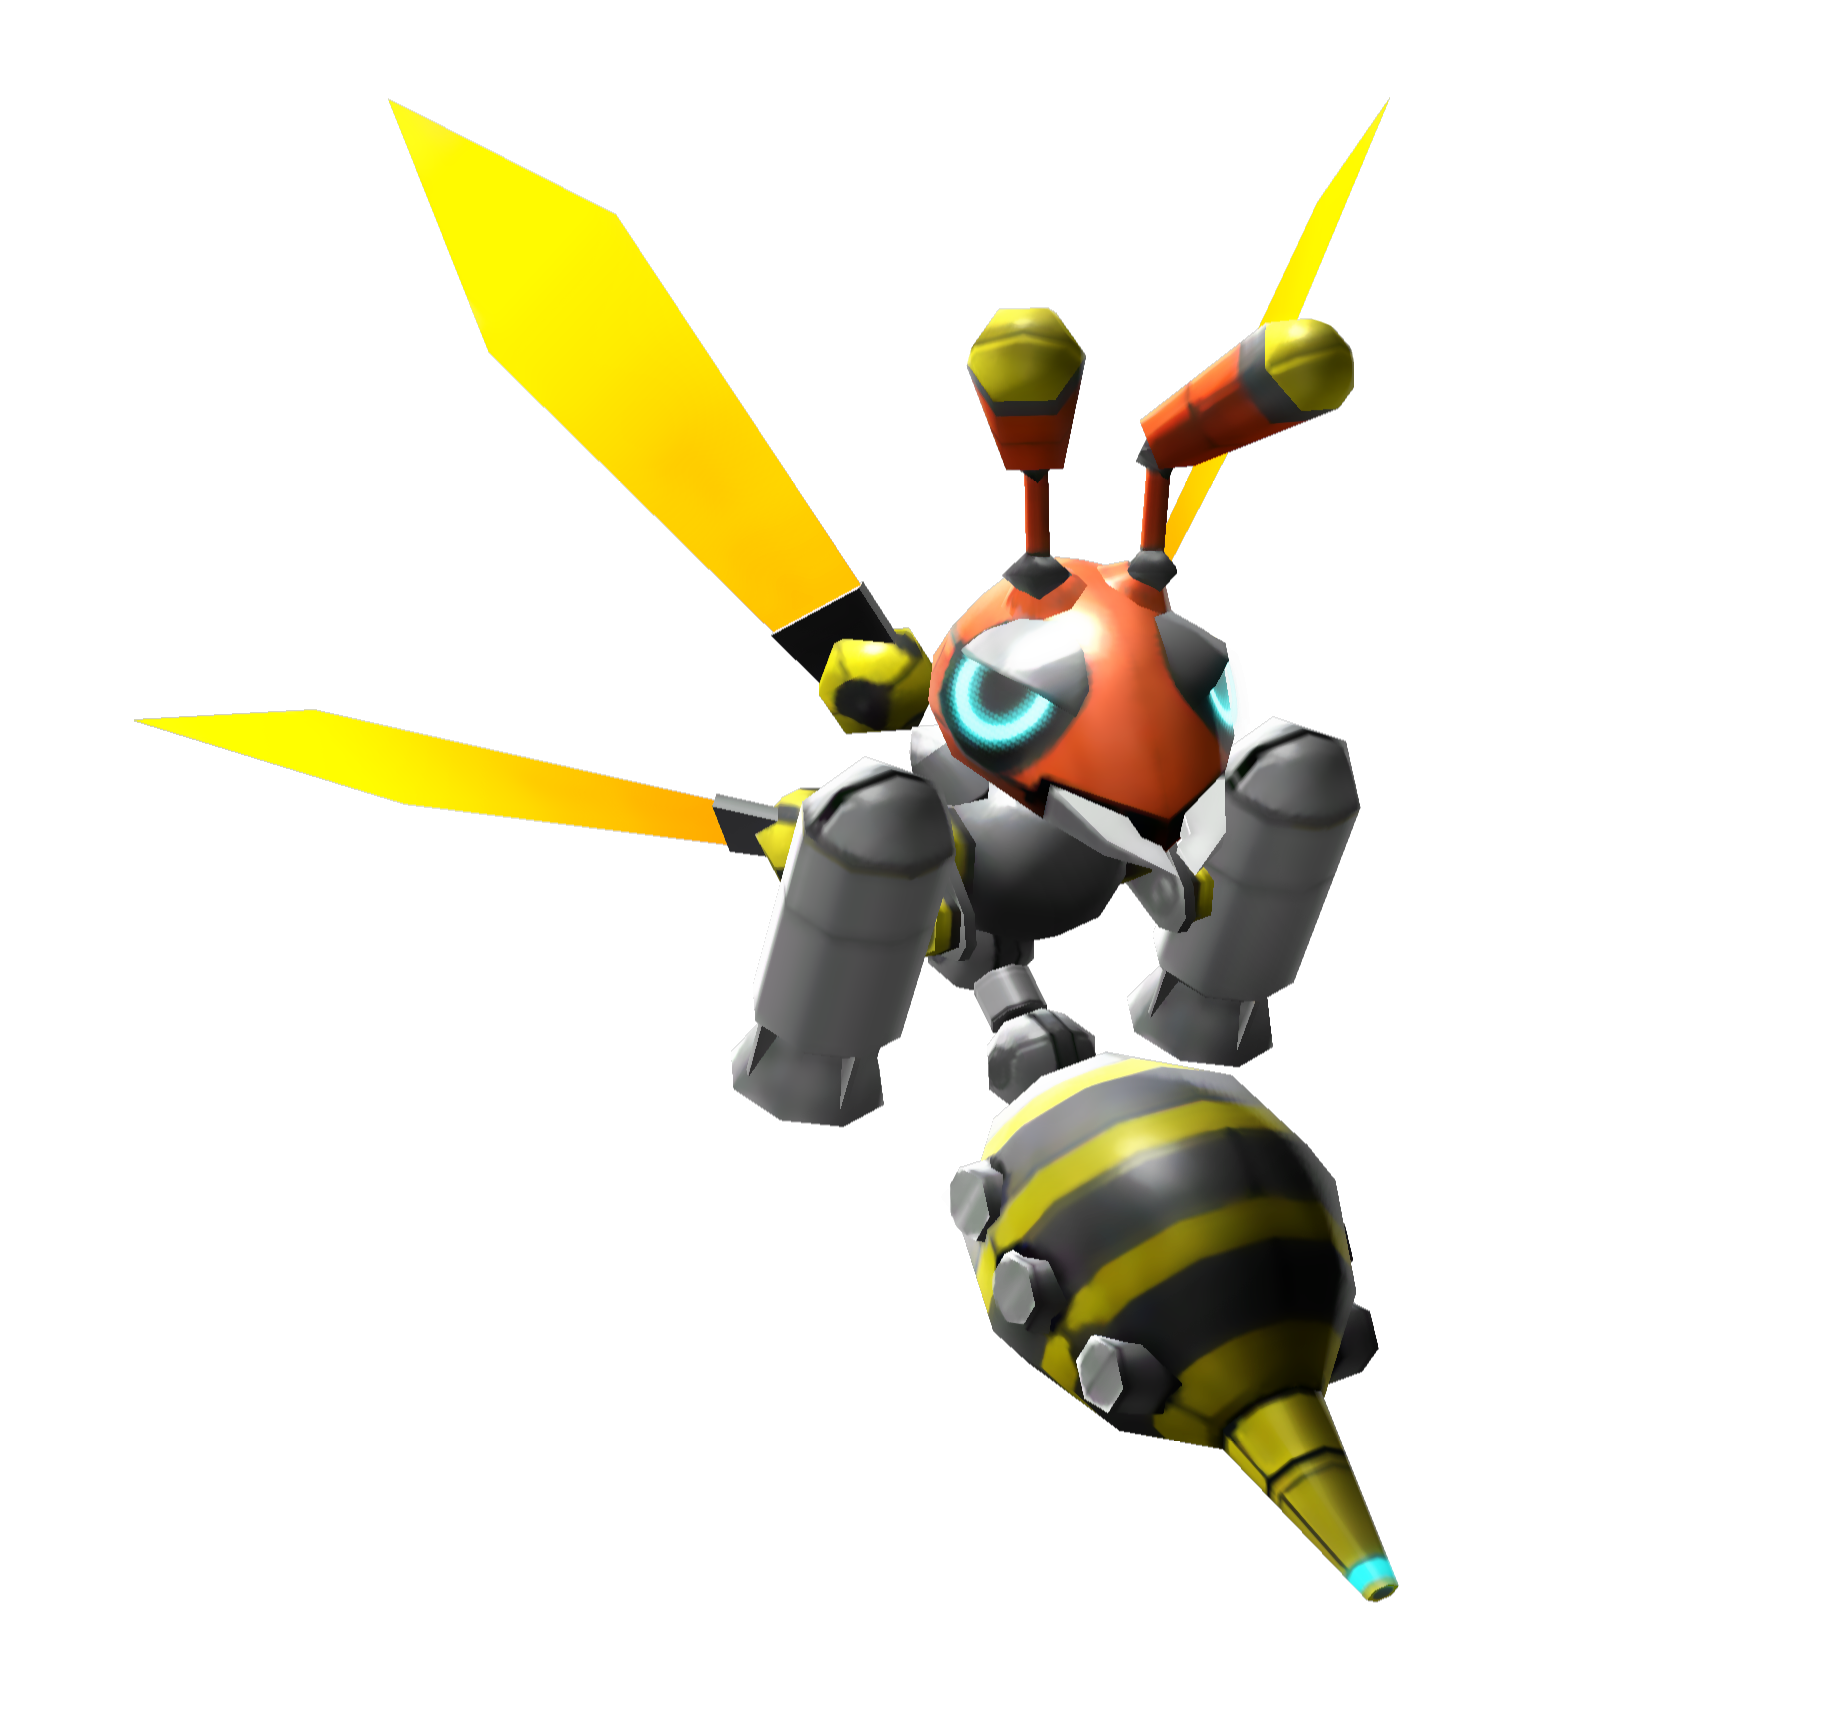 Buzz transparent death battle. Buzzer sonic news network